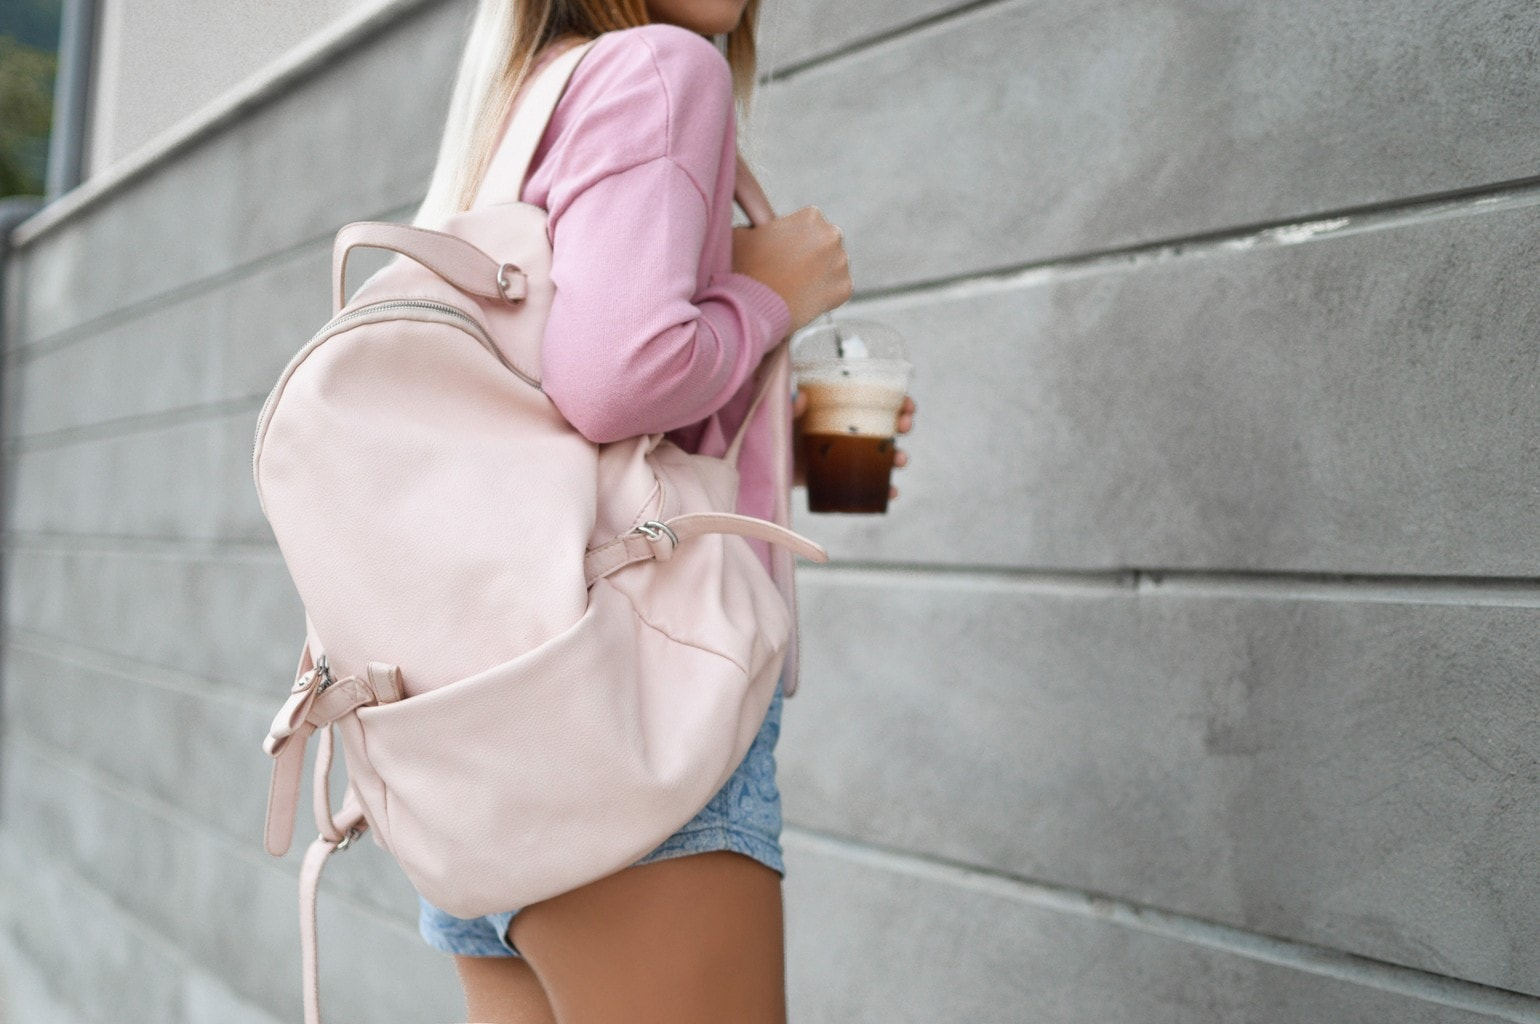 Wardrobe Essentials for College Girls - College Fashion